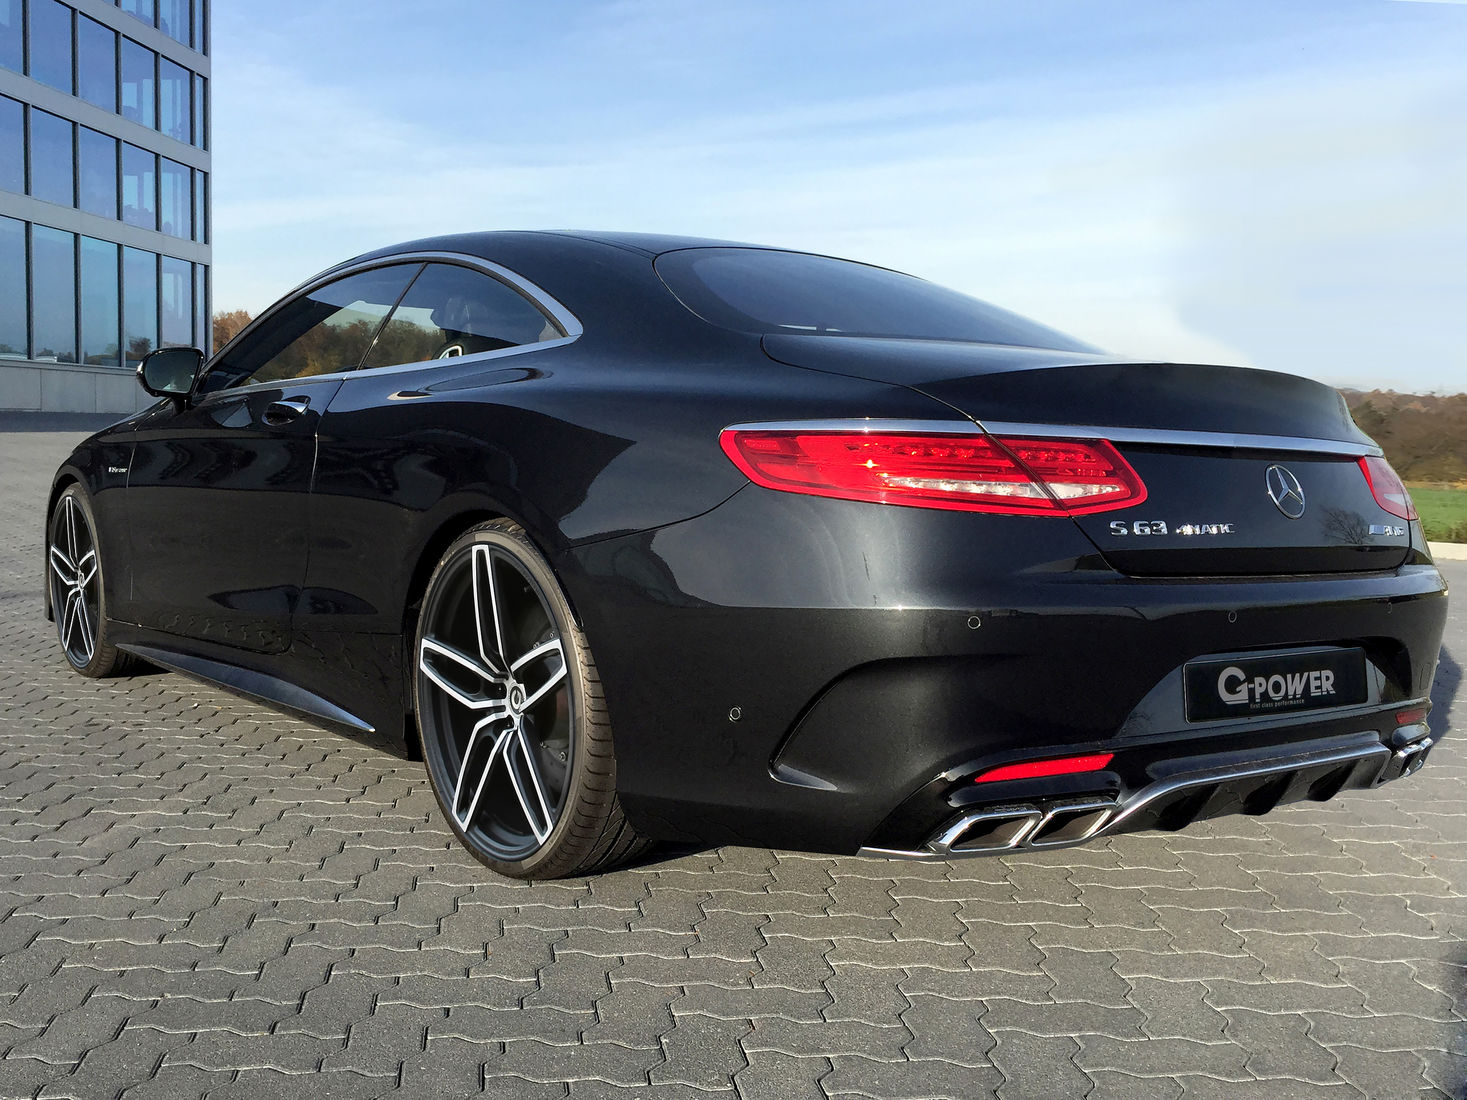 g-power-s63-coupe-3